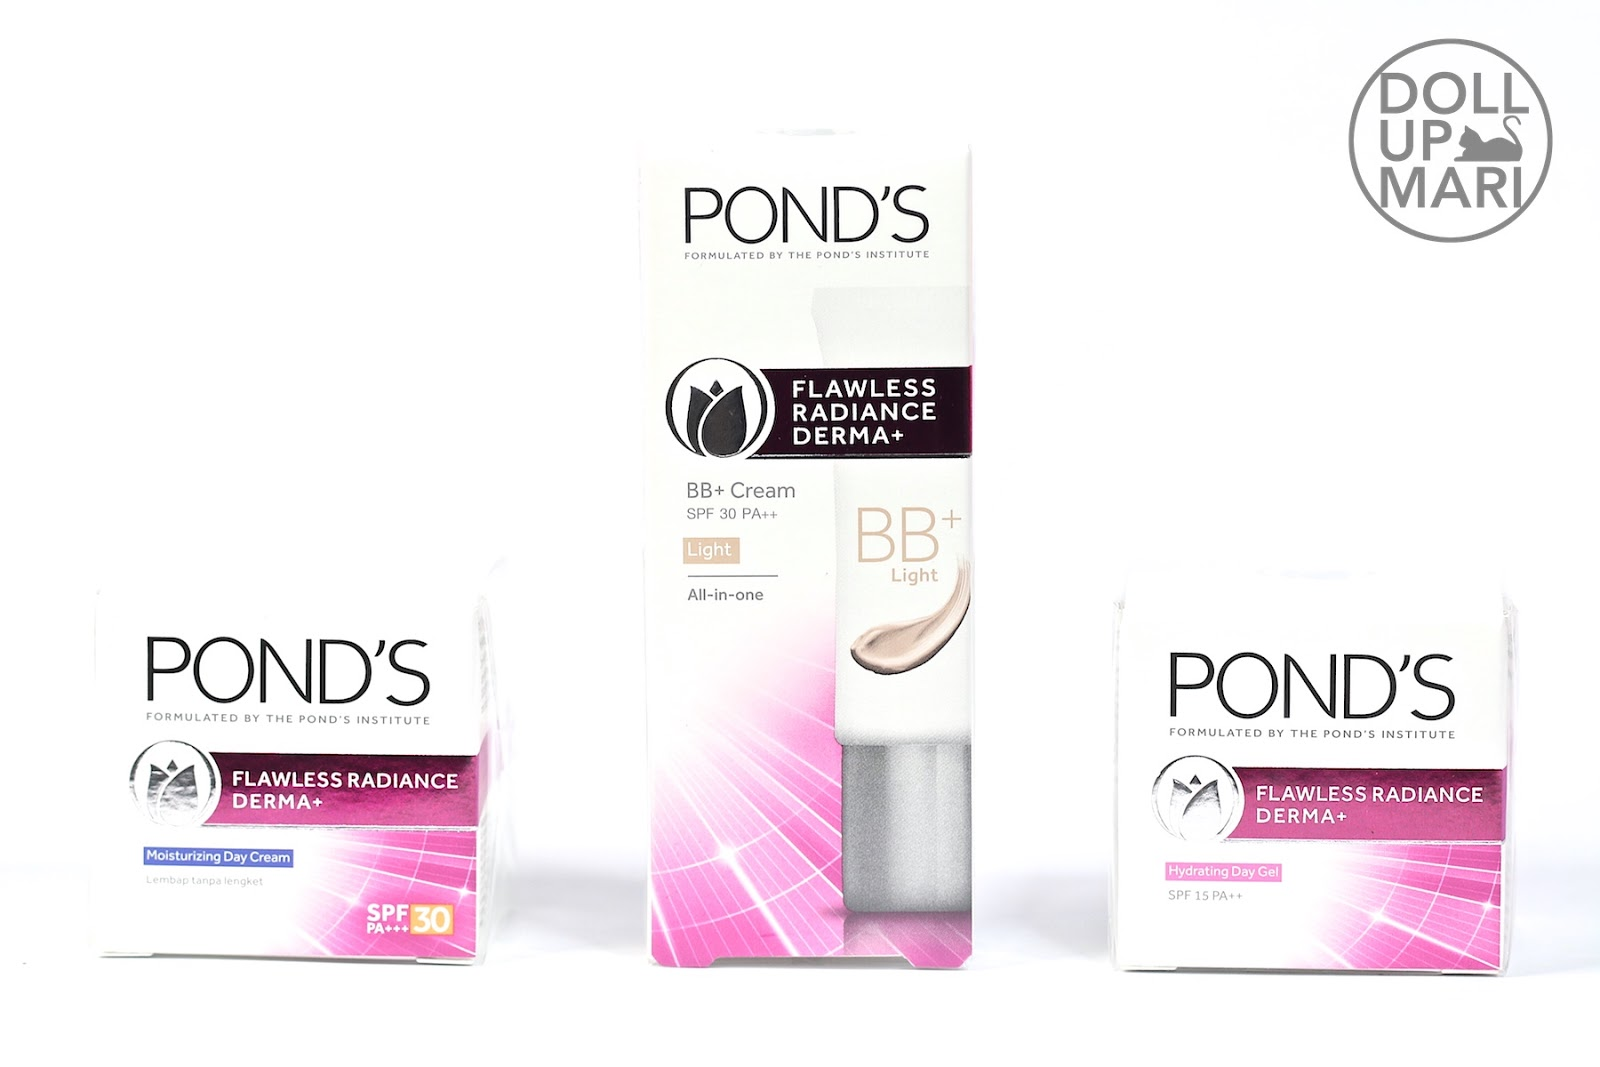 Ponds Flawless Radiance Derma Now At Sample Room Doll Up Mari Daily Moist 50g Range In Boxes